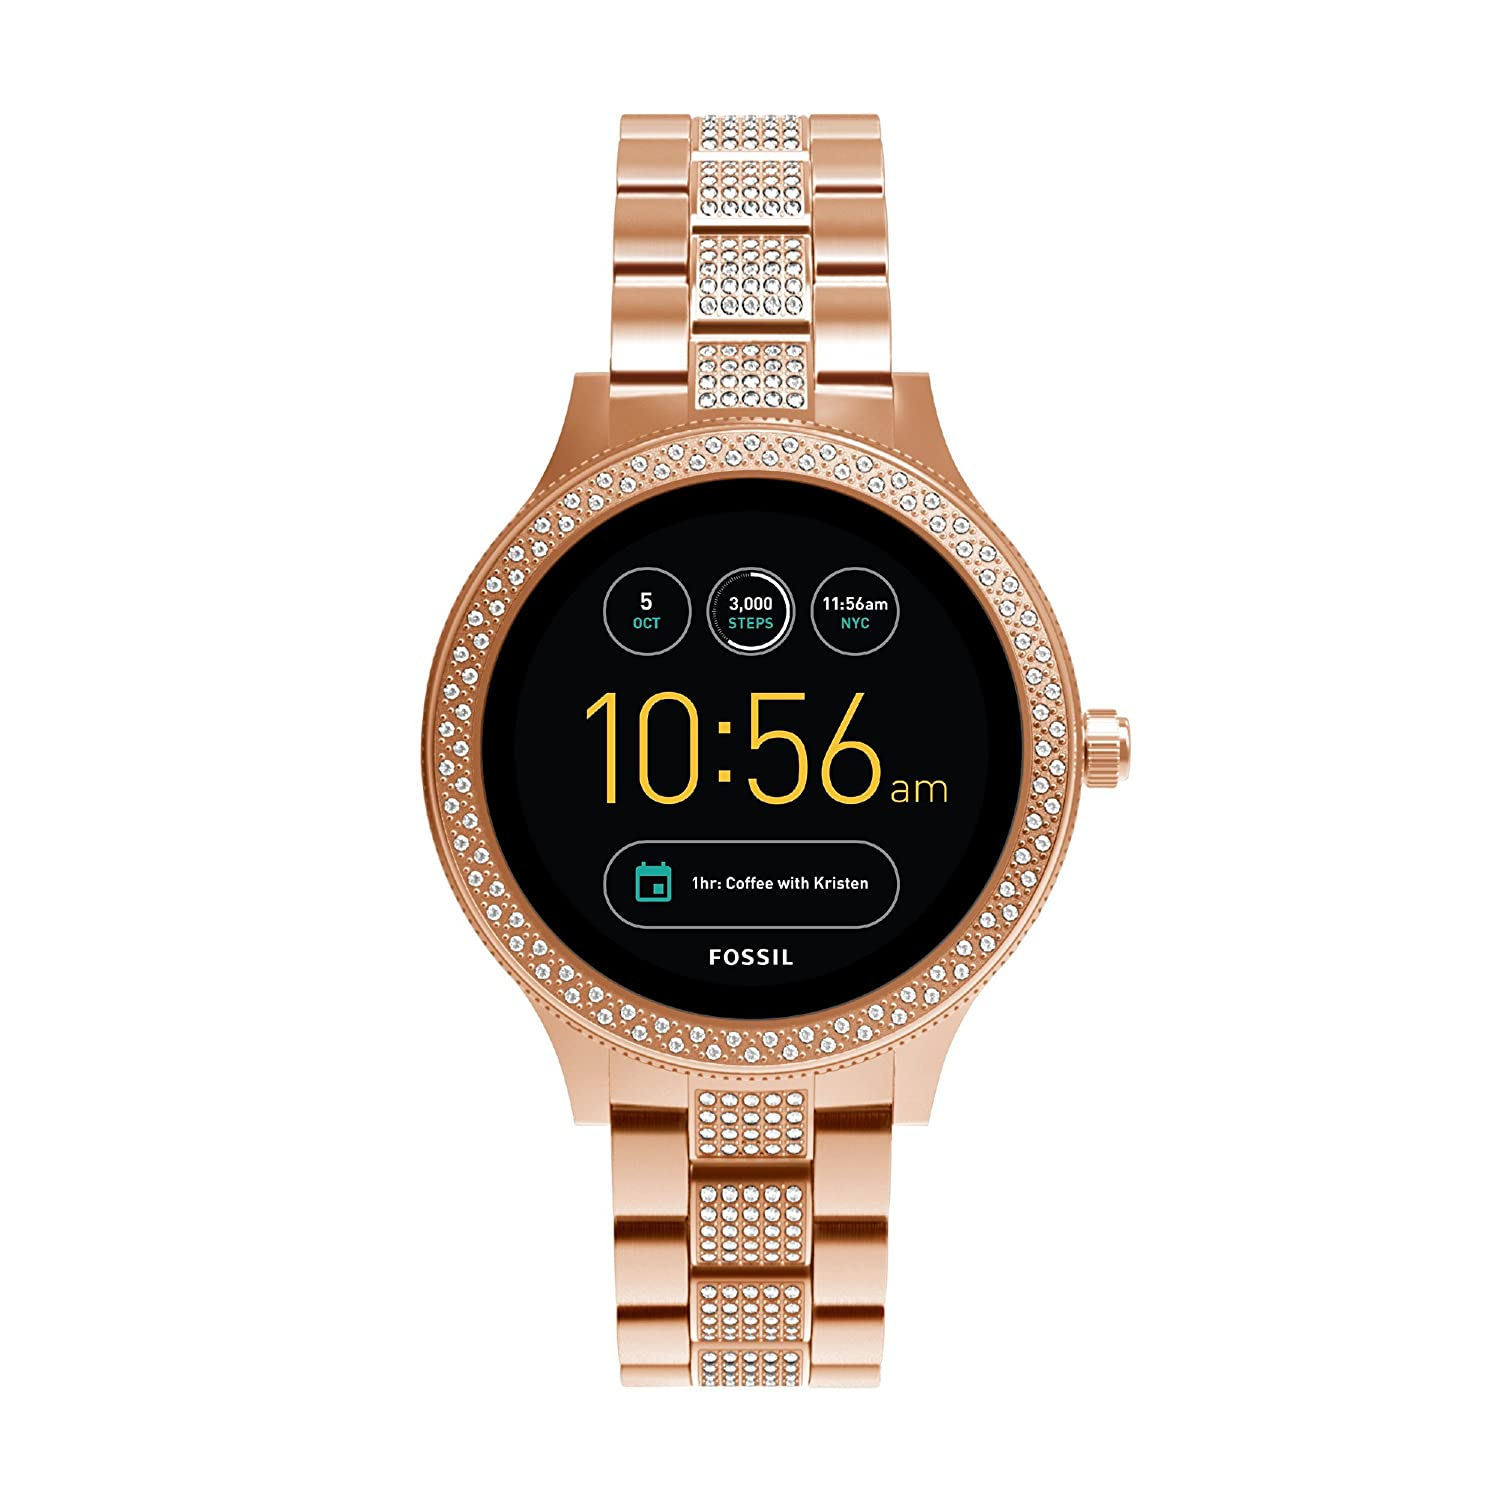 Fossil Womens Digital Connected Wrist Watch With Stainless Steel Jam Set Strap Ftw6008 Watches